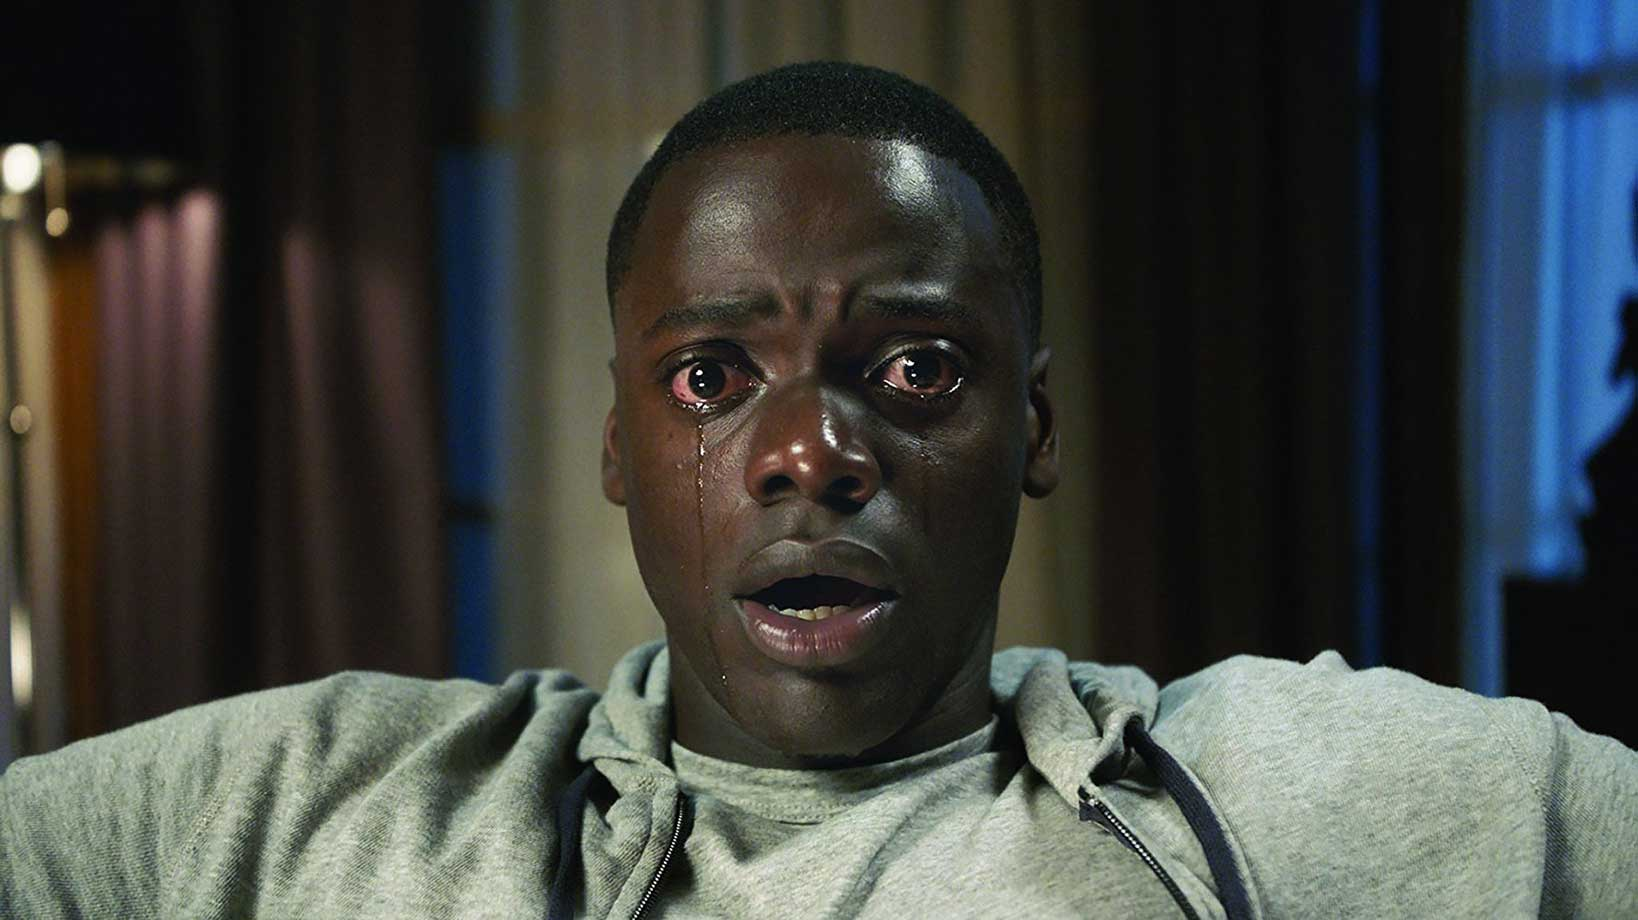 Daniel Kaluya crying in Get Out, courtesy of Universal Studios